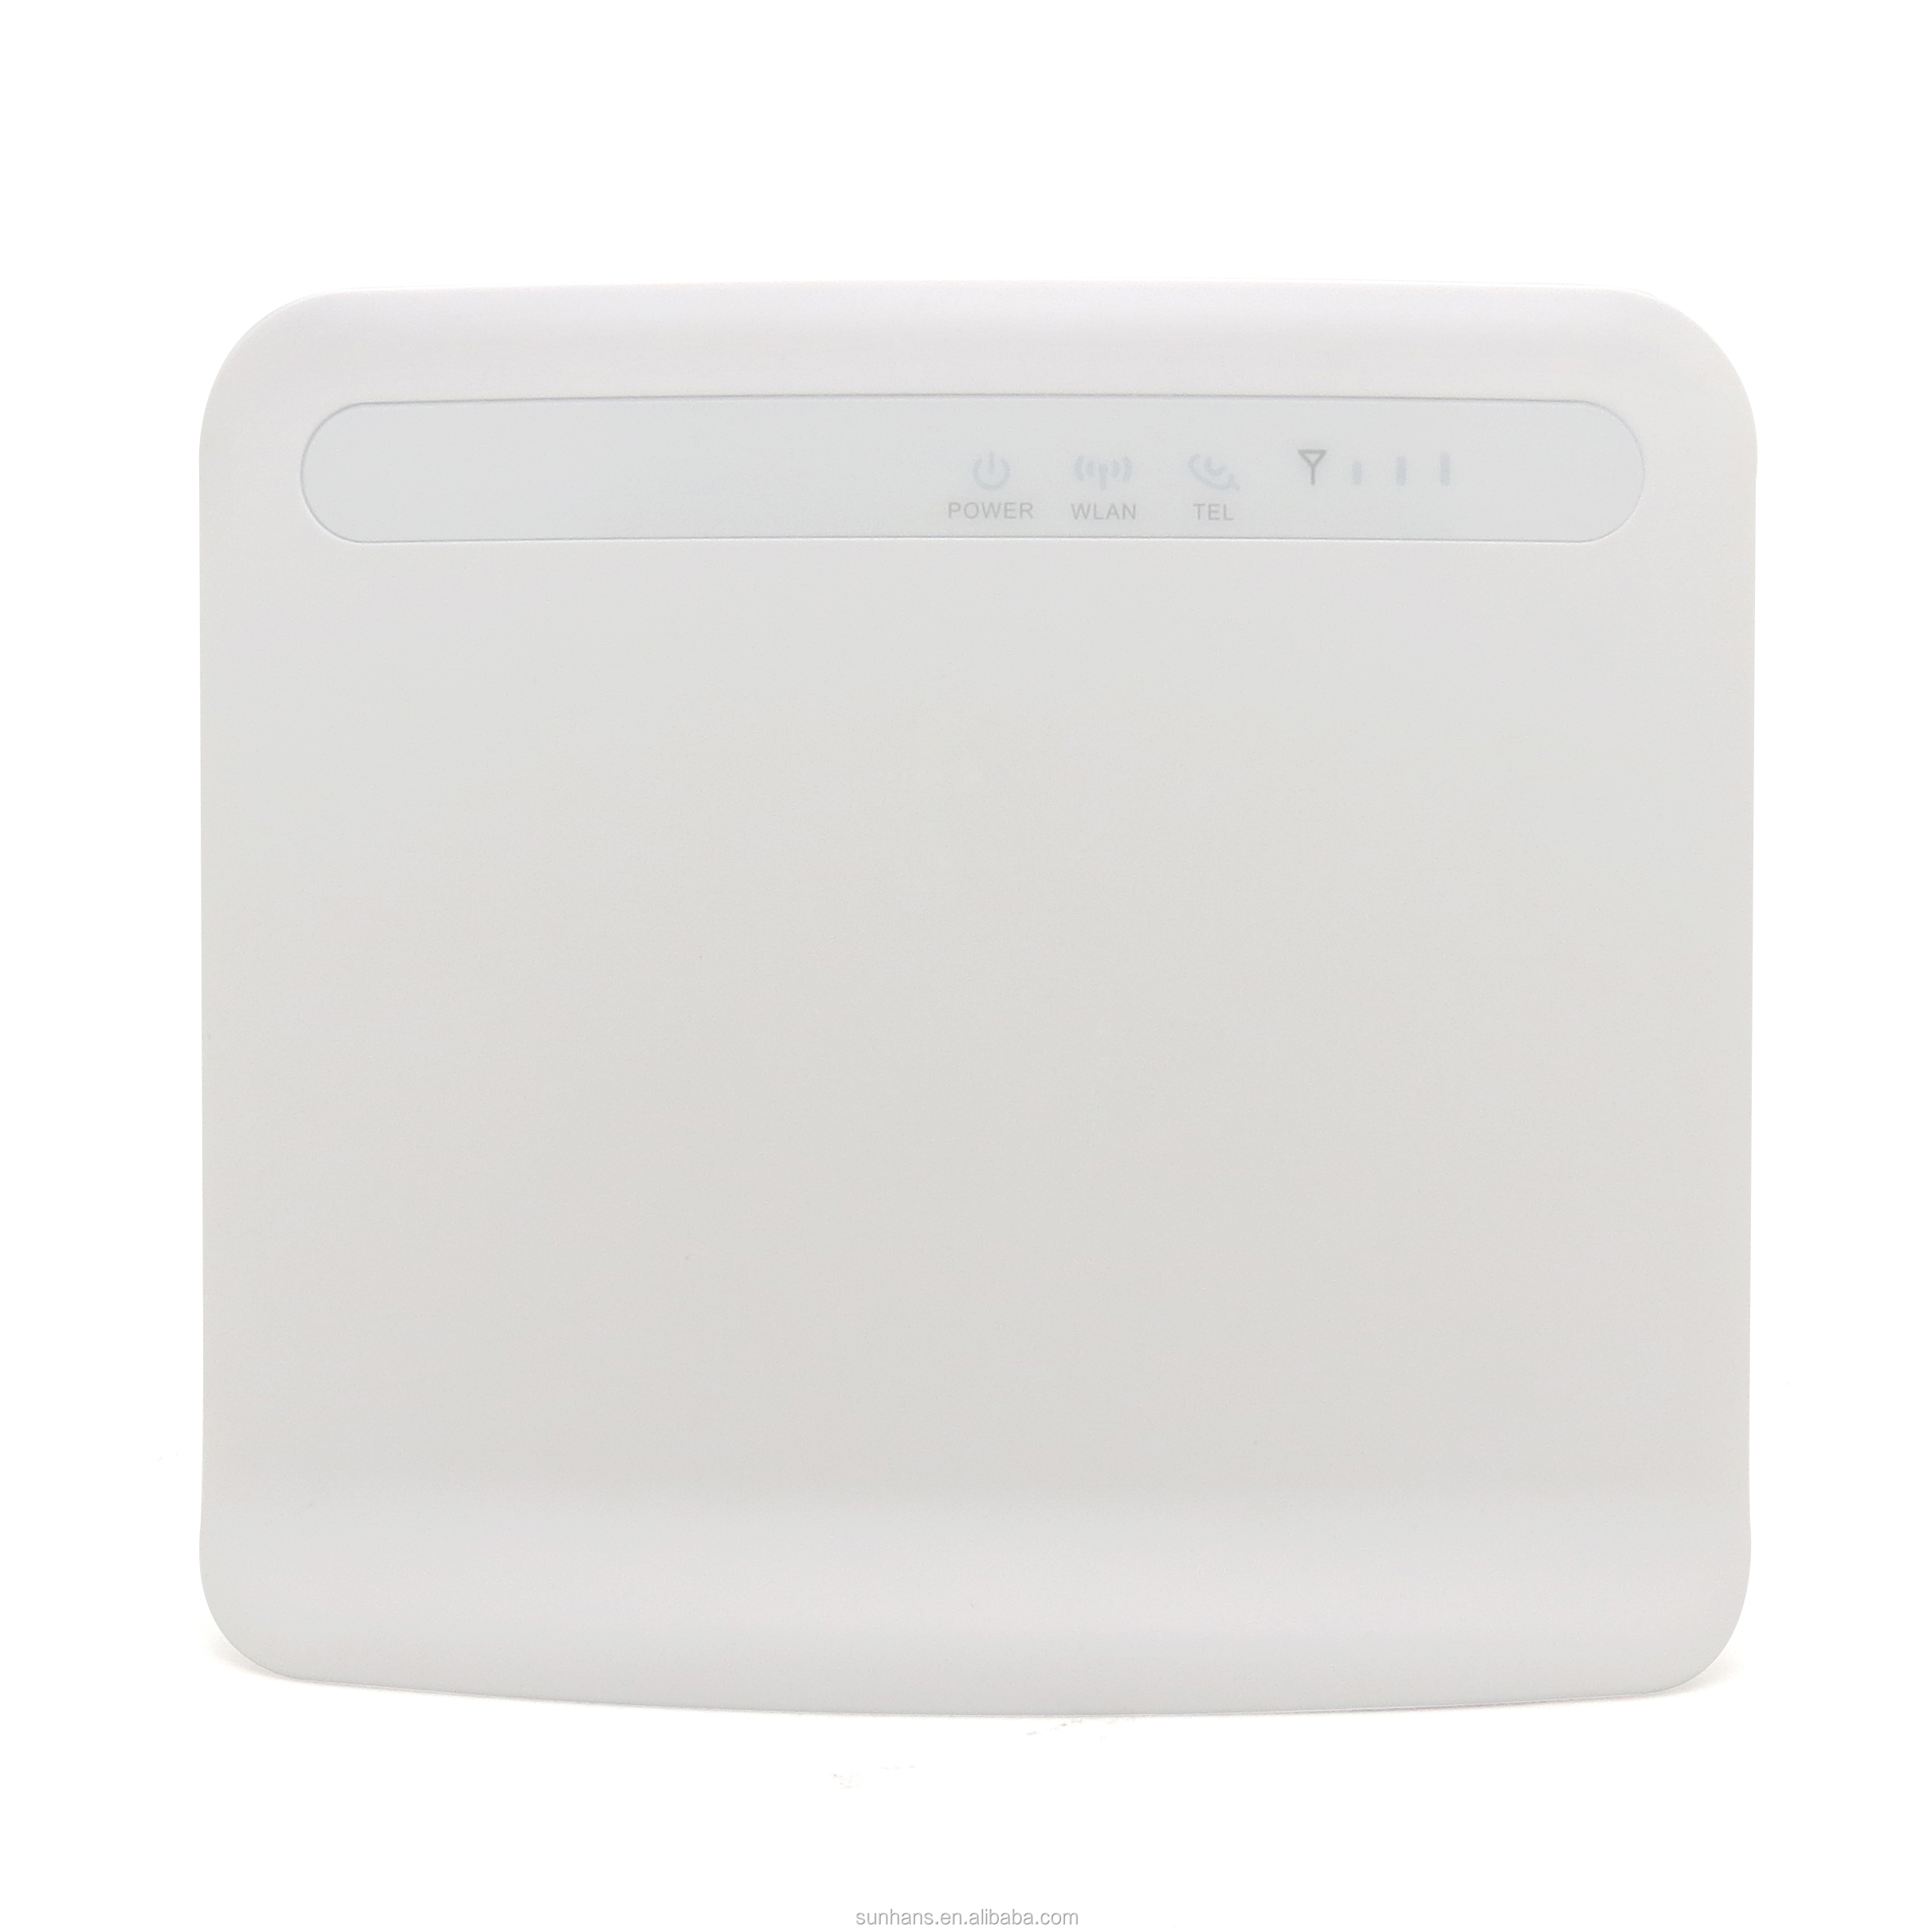 192 168 1 1 Wireless Router Cat 6 Sunhans 4g Cpe Wifi Router Indoor With  Sim Card Slot - Buy 4g Cpe Indoor Outdoor Wifi Router,Sunhans Highest Rate